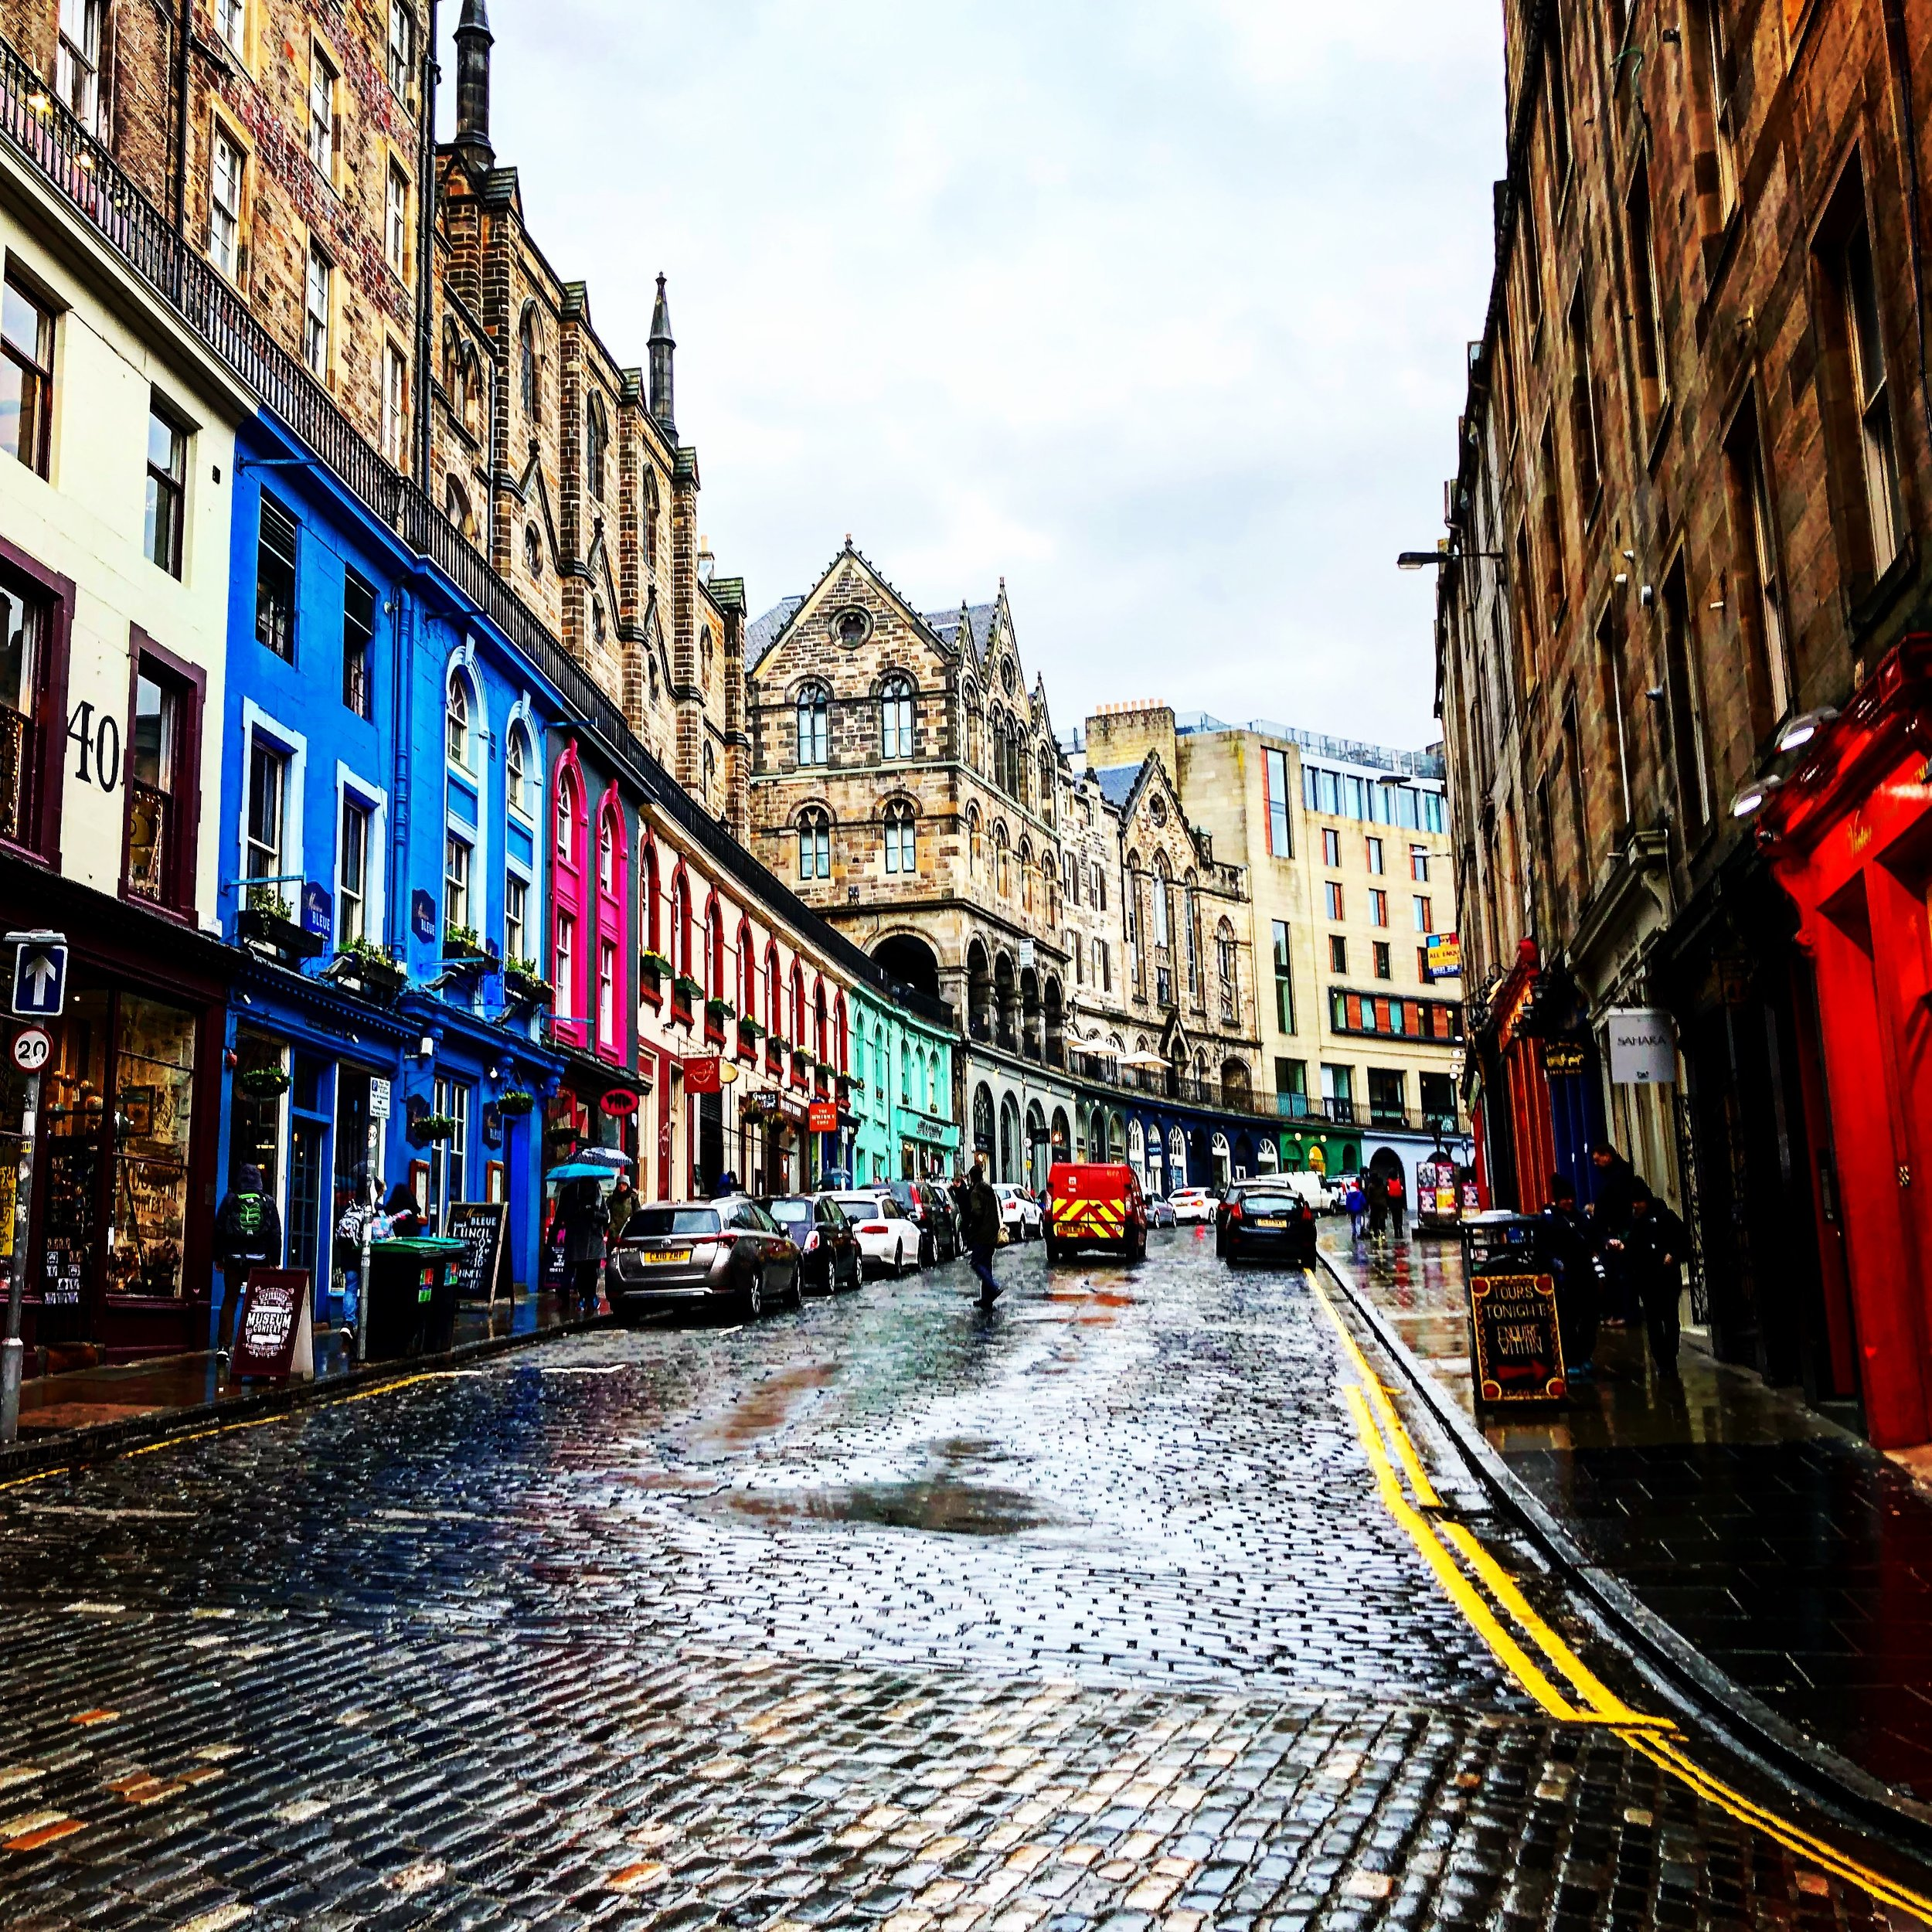 EXPLORE - Get to know old Europe the way you've always imagined.SCOTLAND